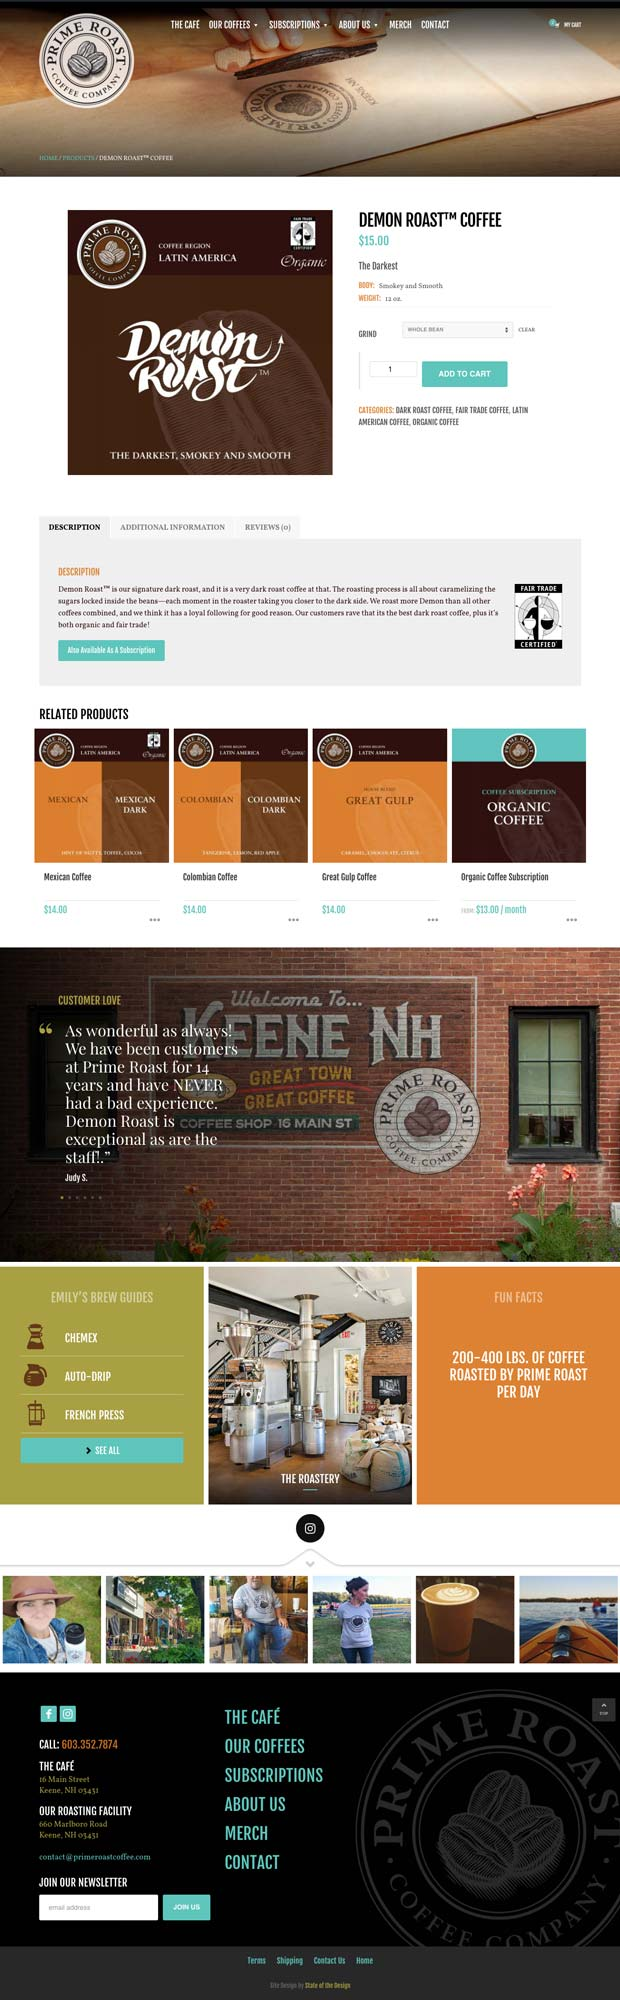 Prime Roast Coffee Product Page Design